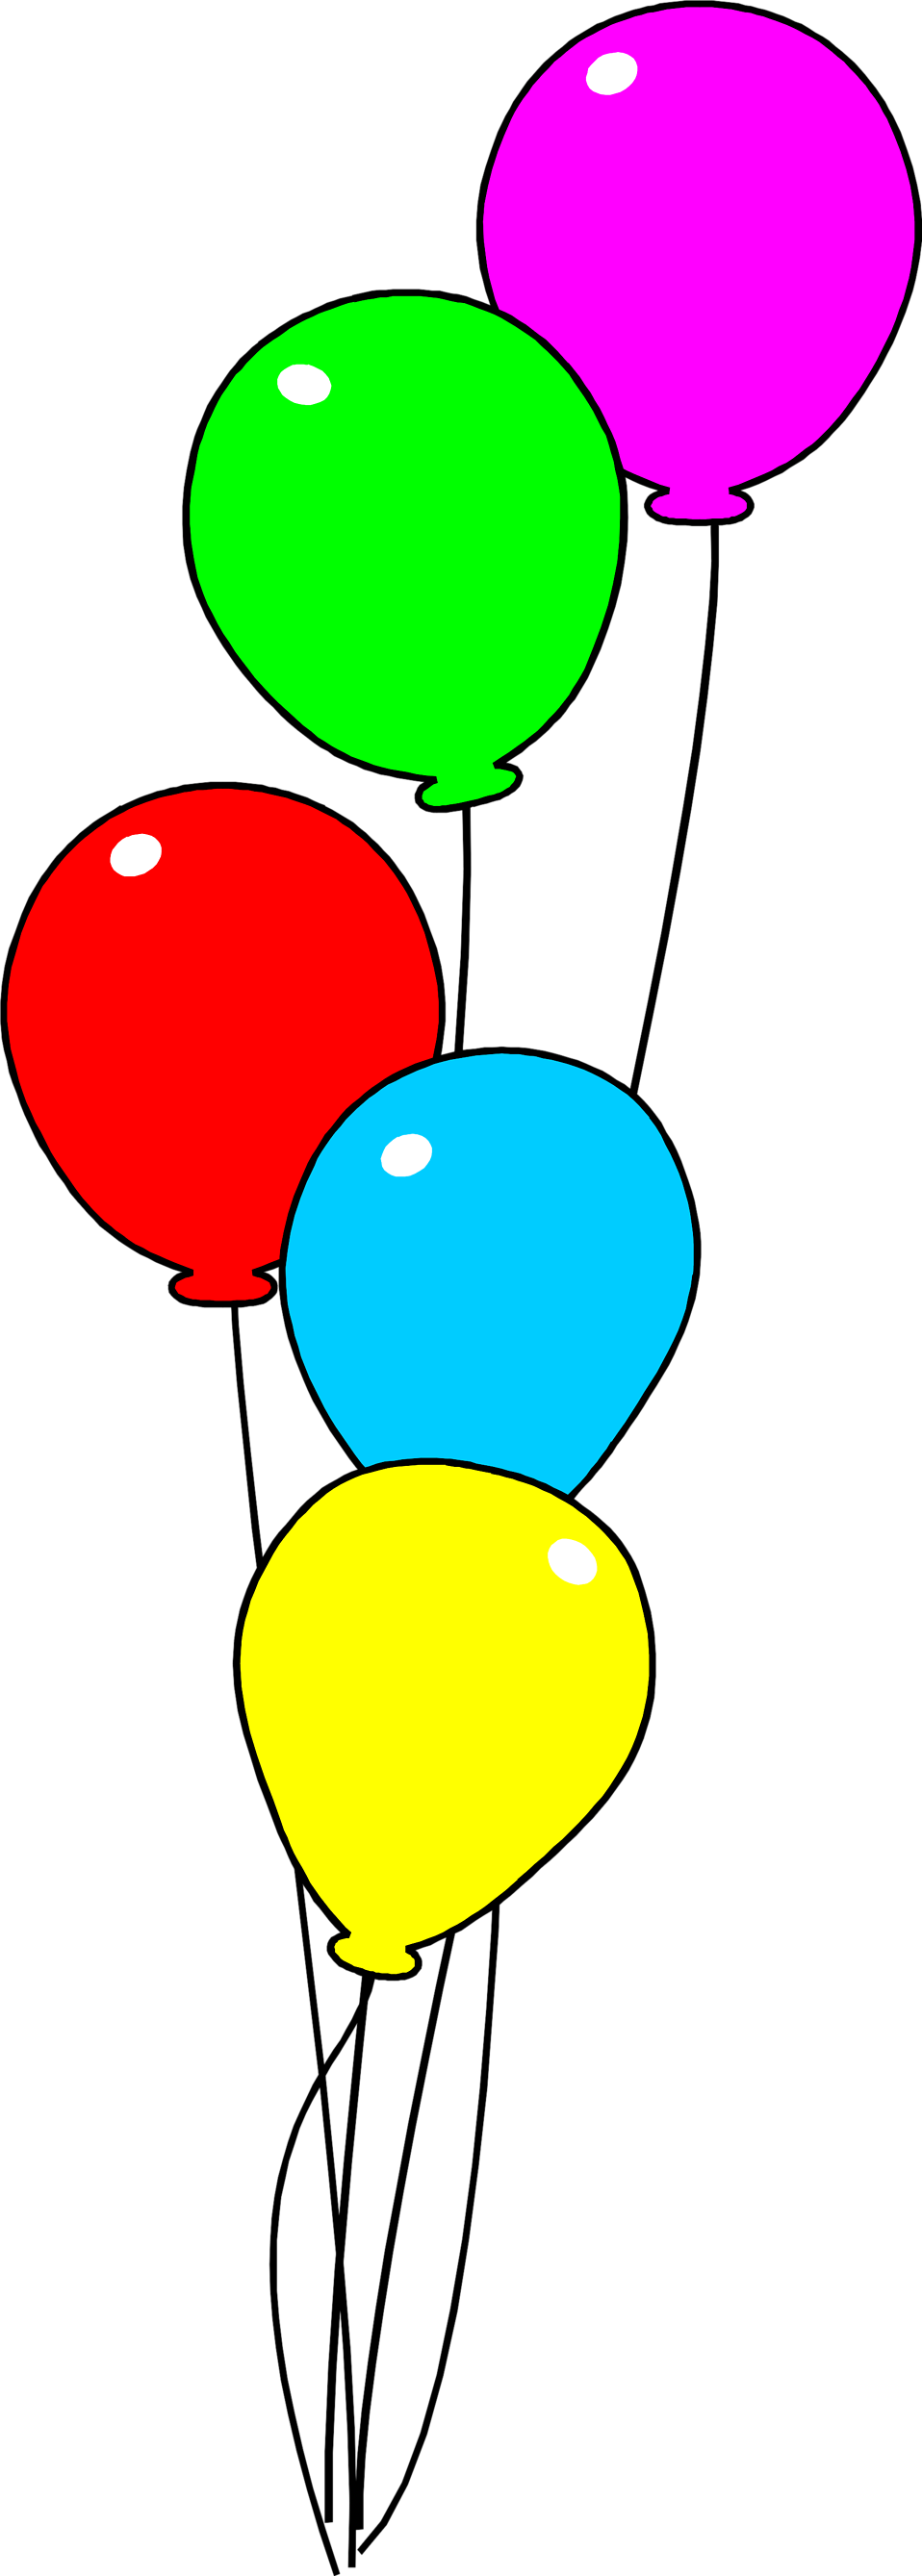 Illustration of colorful balloons.